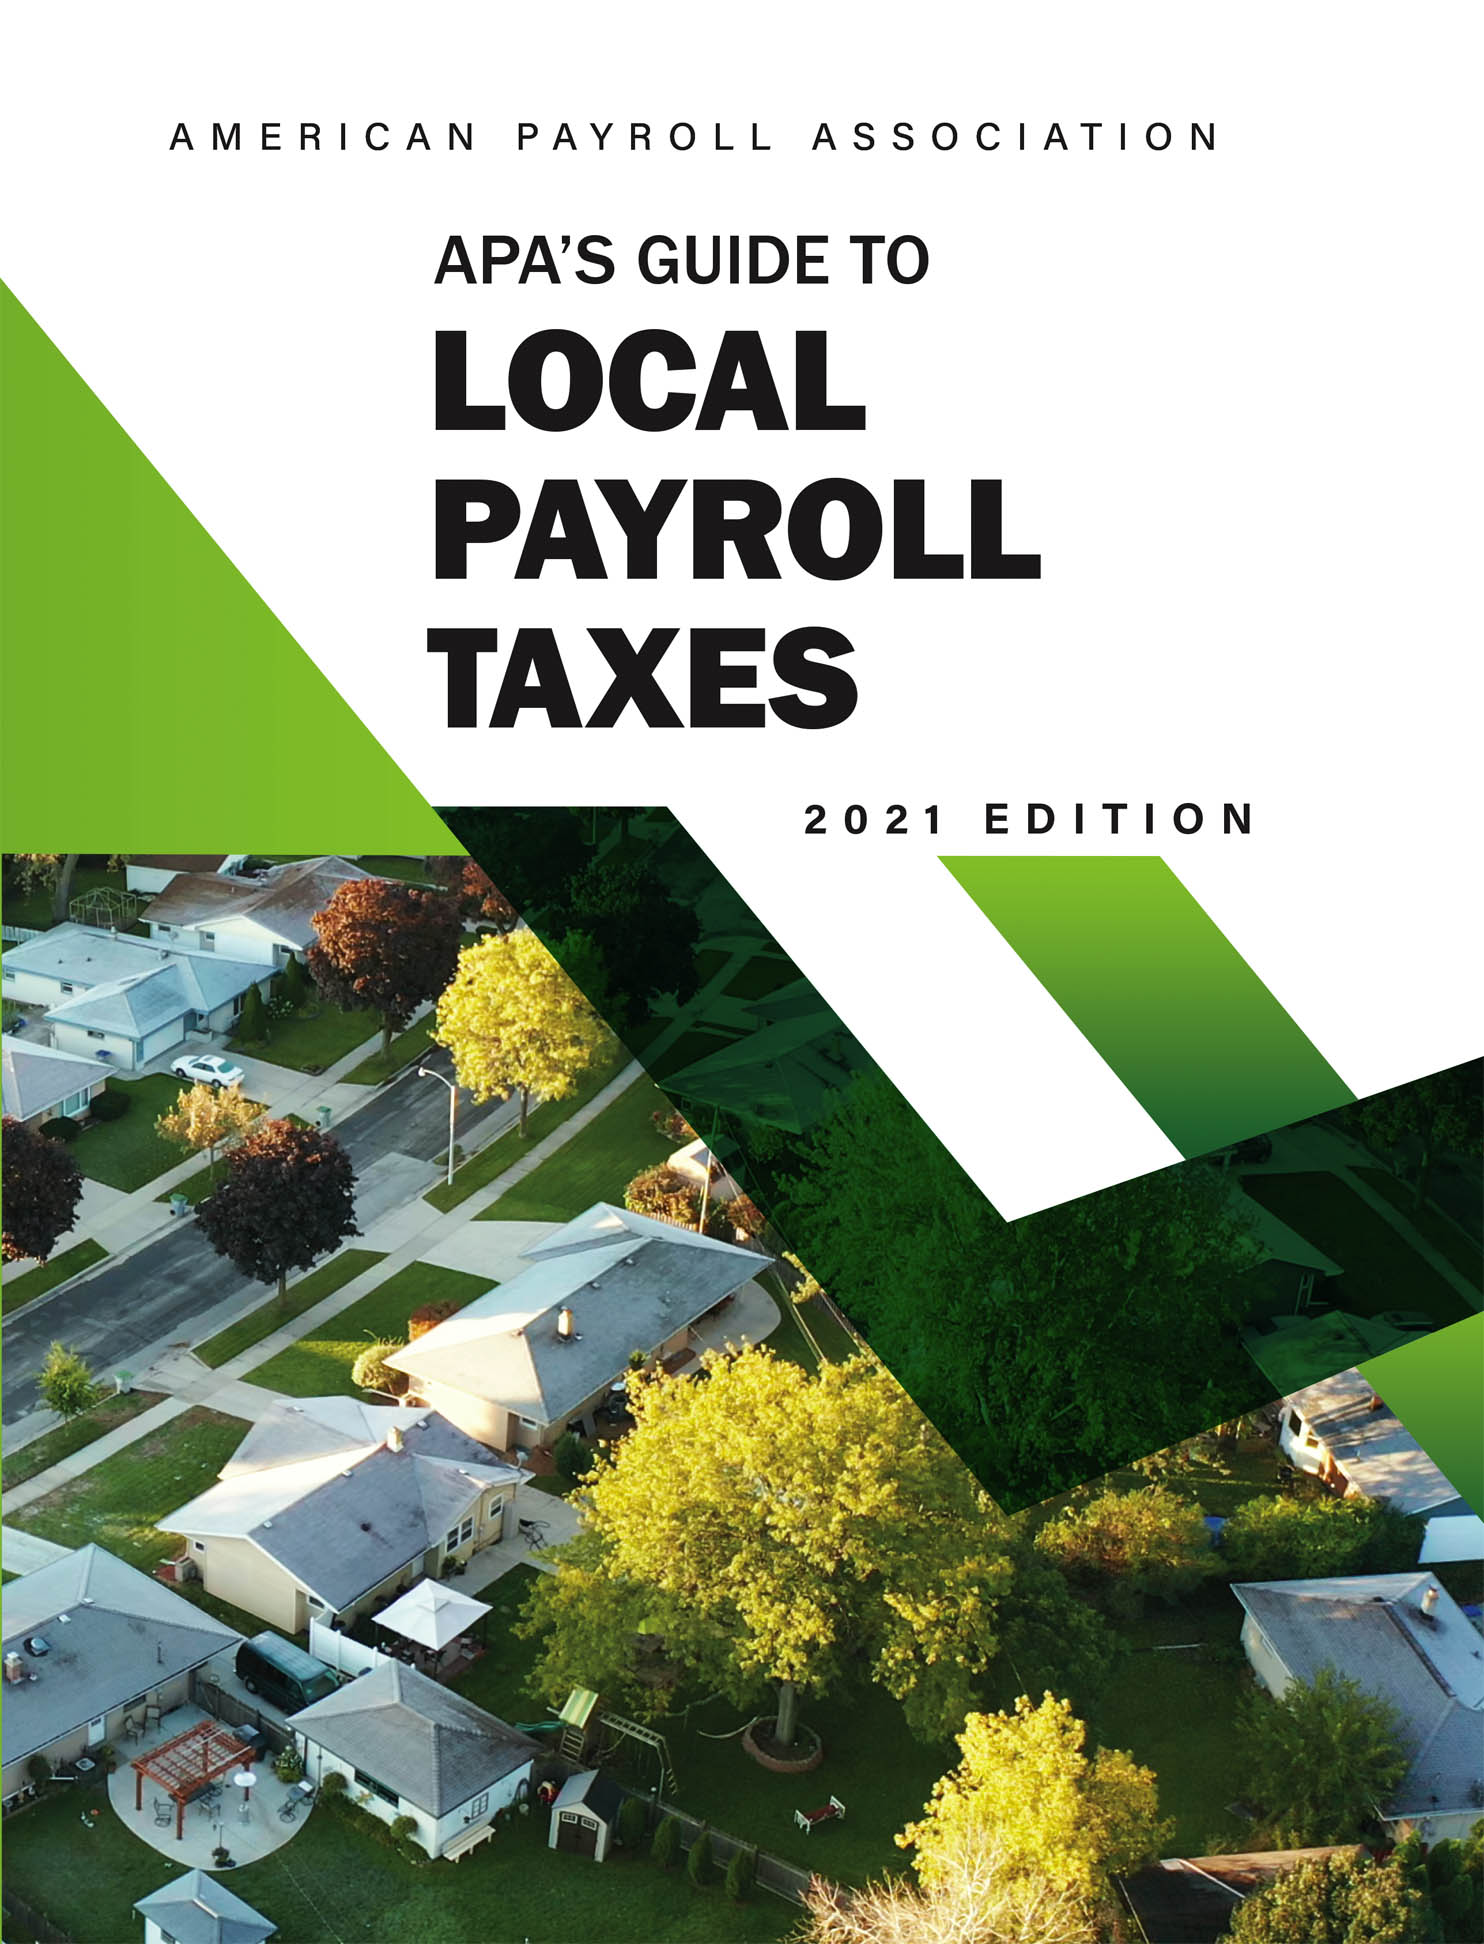 APA's Guide to Local Payroll Taxes cover image